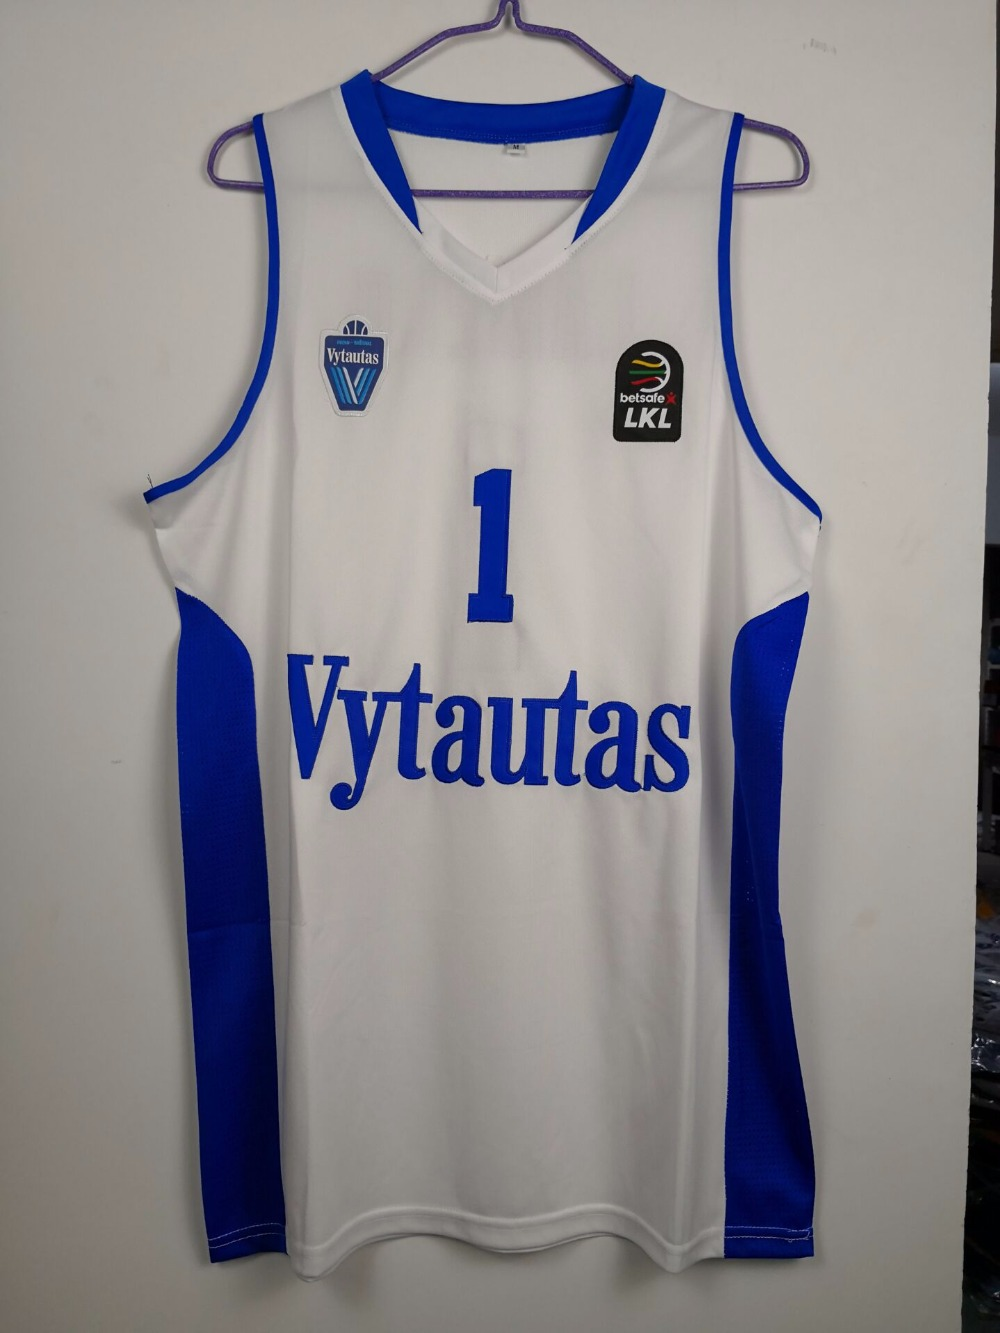 b0c2852d4 Buy ball jersey and get free shipping on AliExpress.com